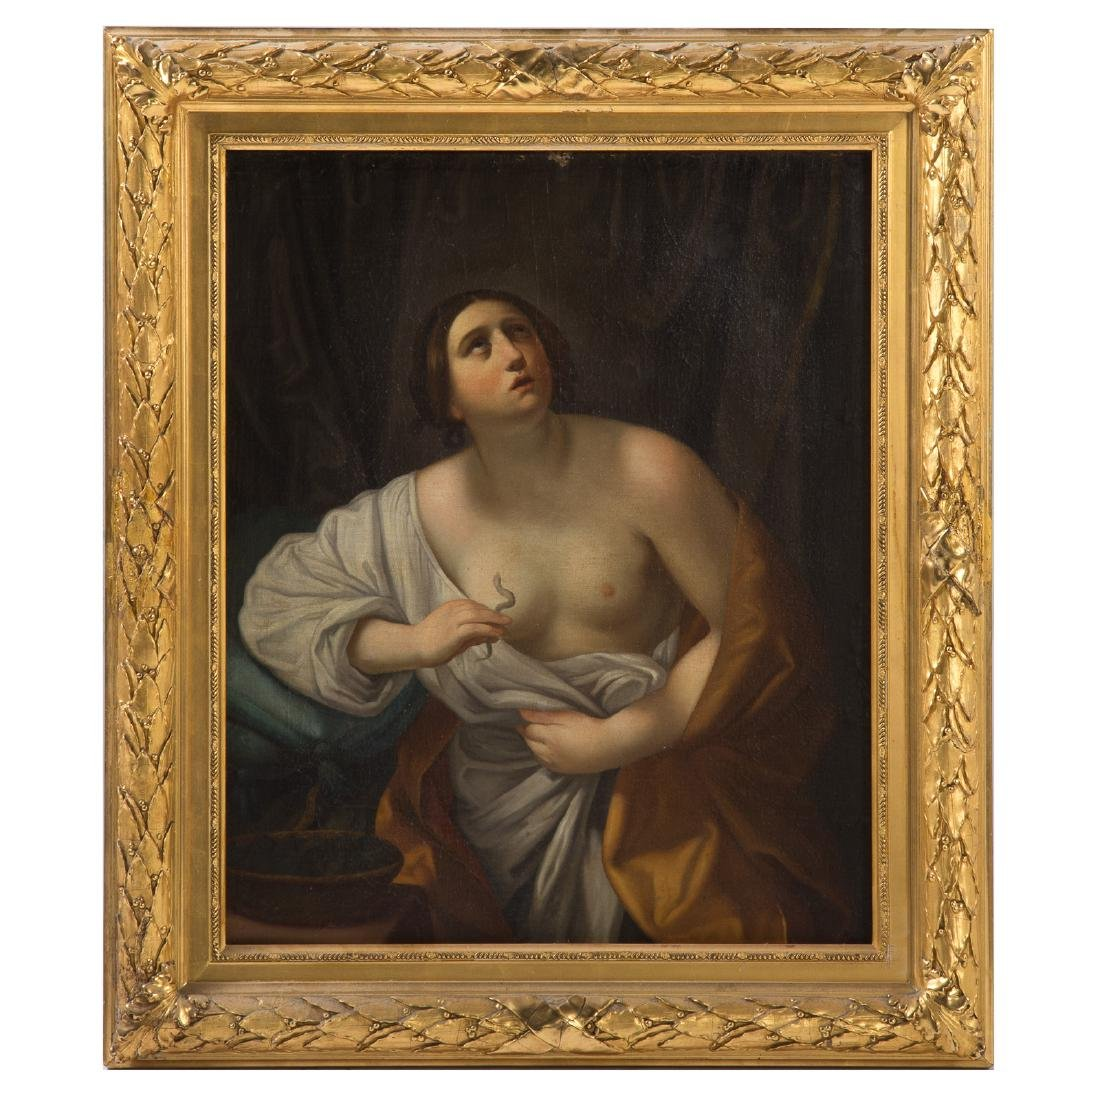 After Guido Reni. Death of Cleopatra, oil